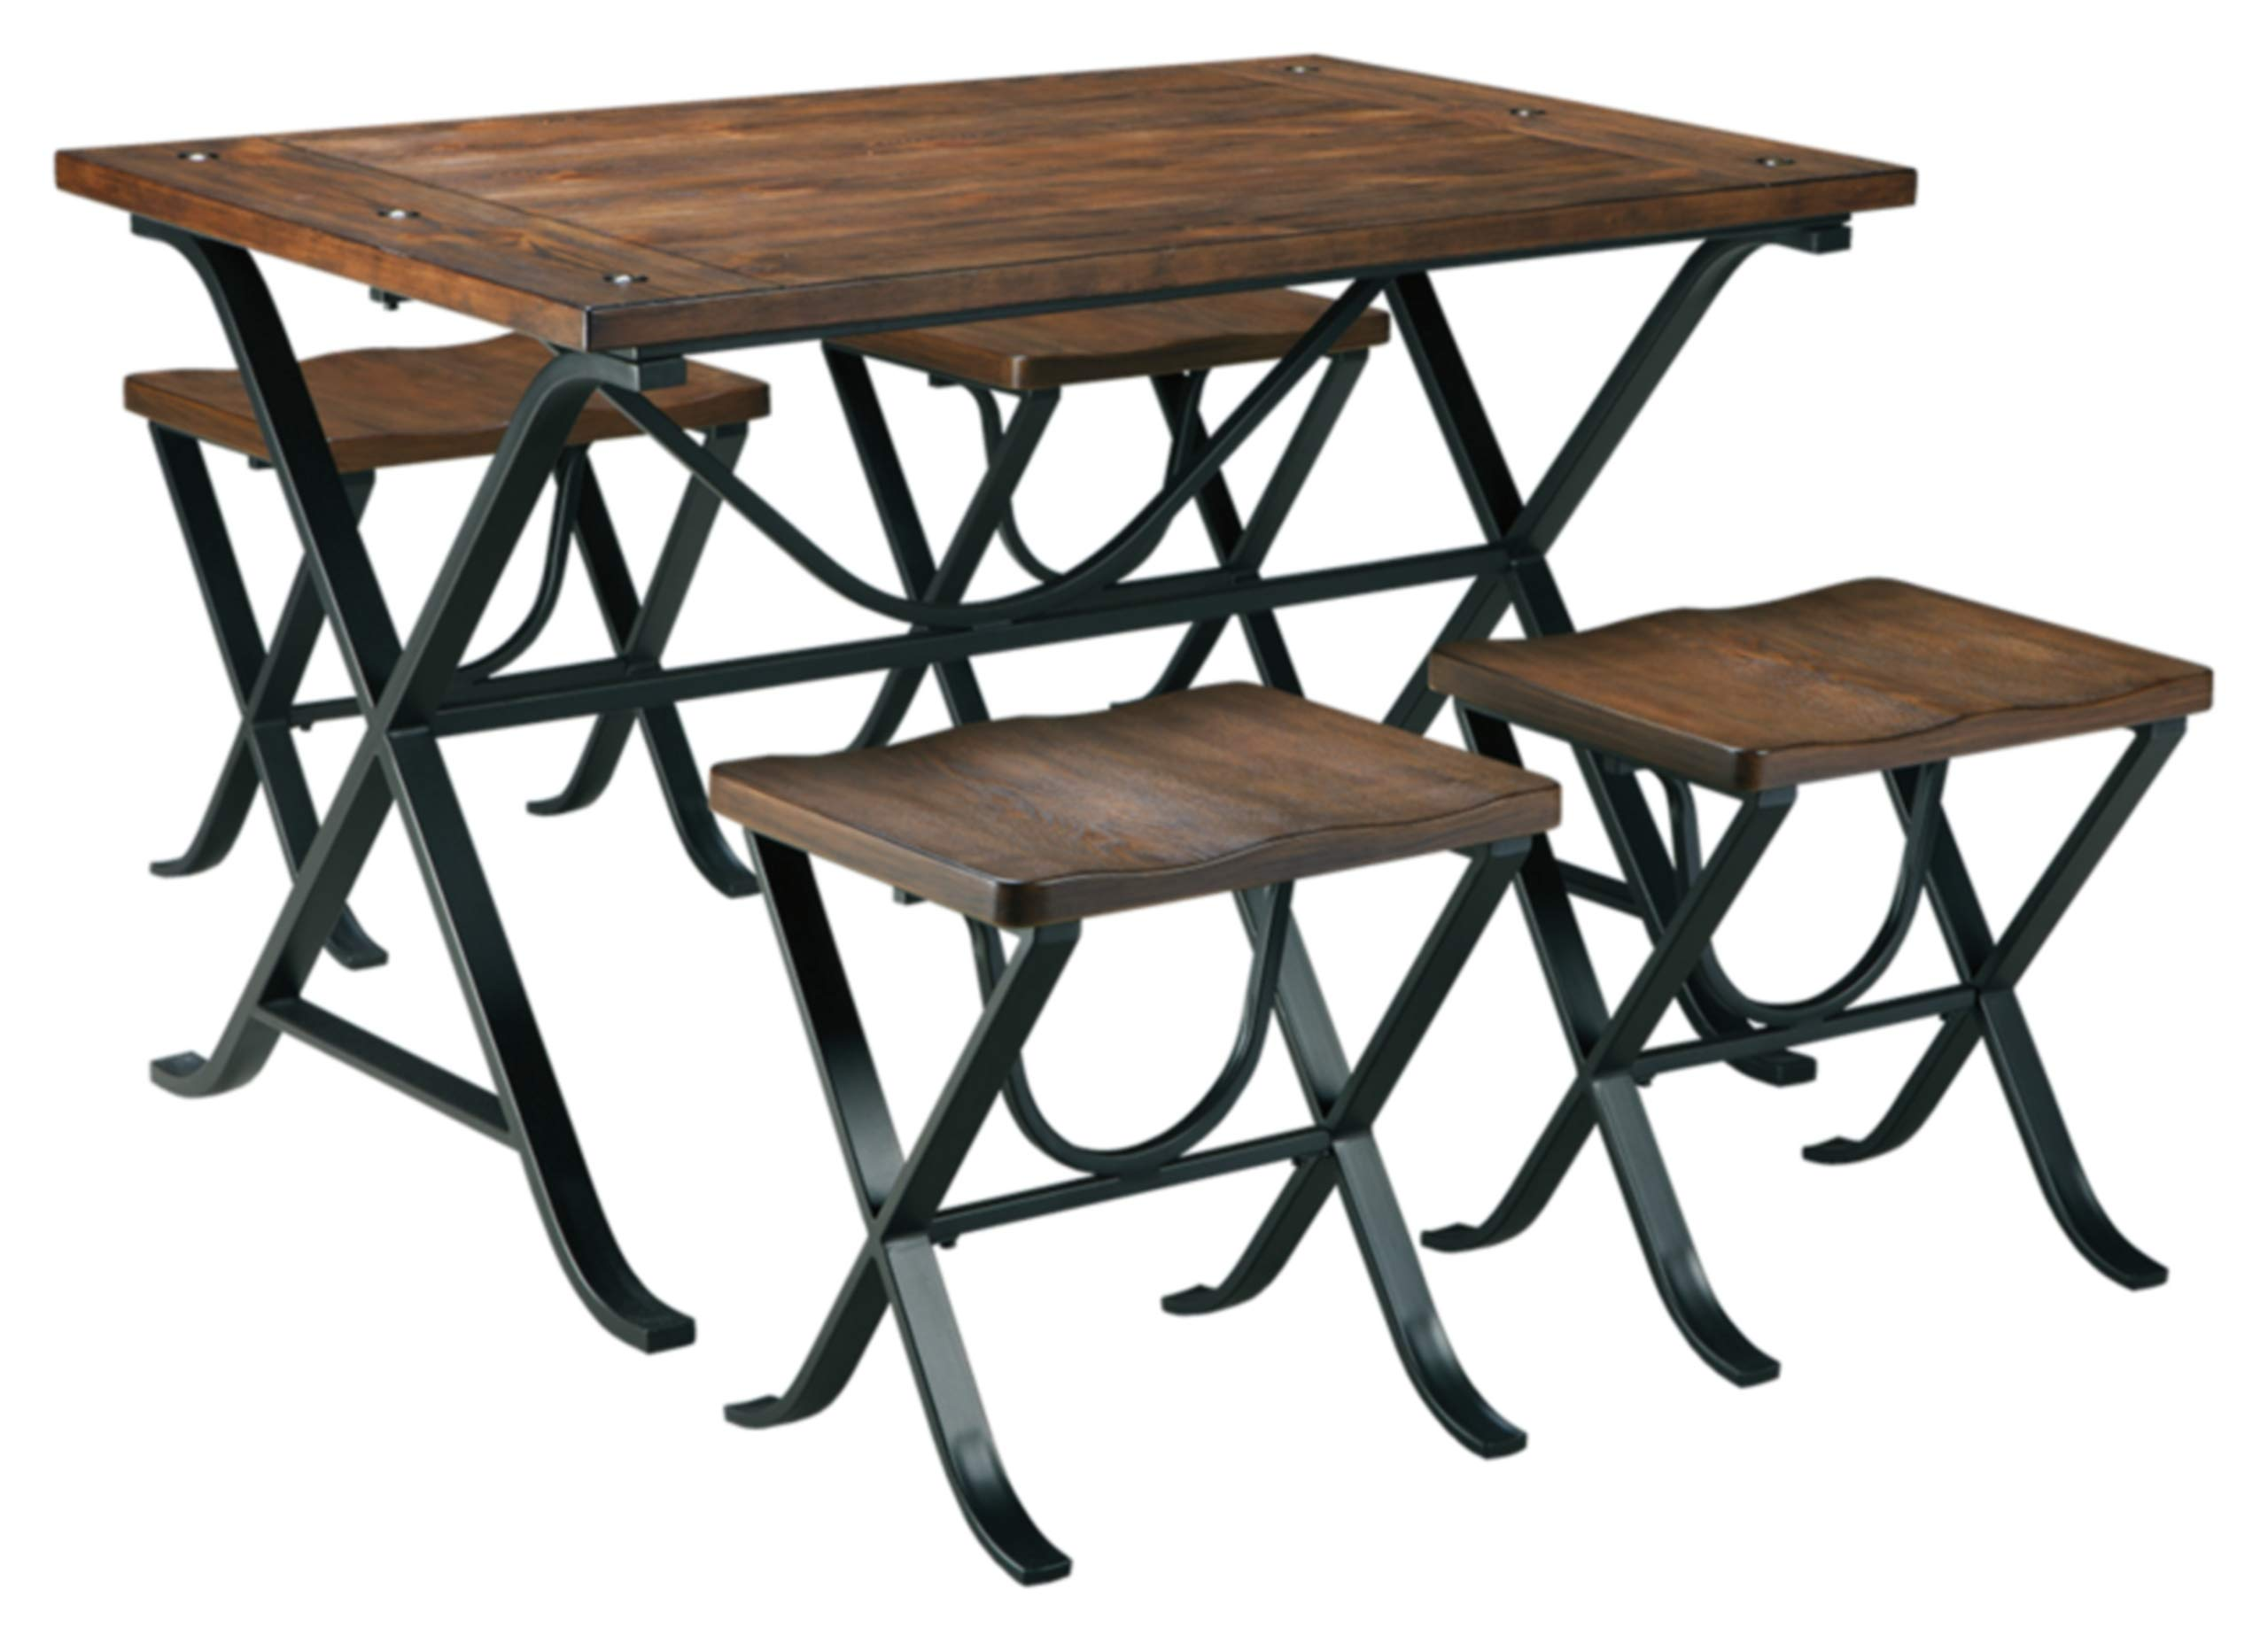 Ashley Furniture Signature Design - Freimore Dining Room Table and Stools - Set of 5 - Medium Brown Wood Top and Black Metal Legs by Signature Design by Ashley (Image #1)